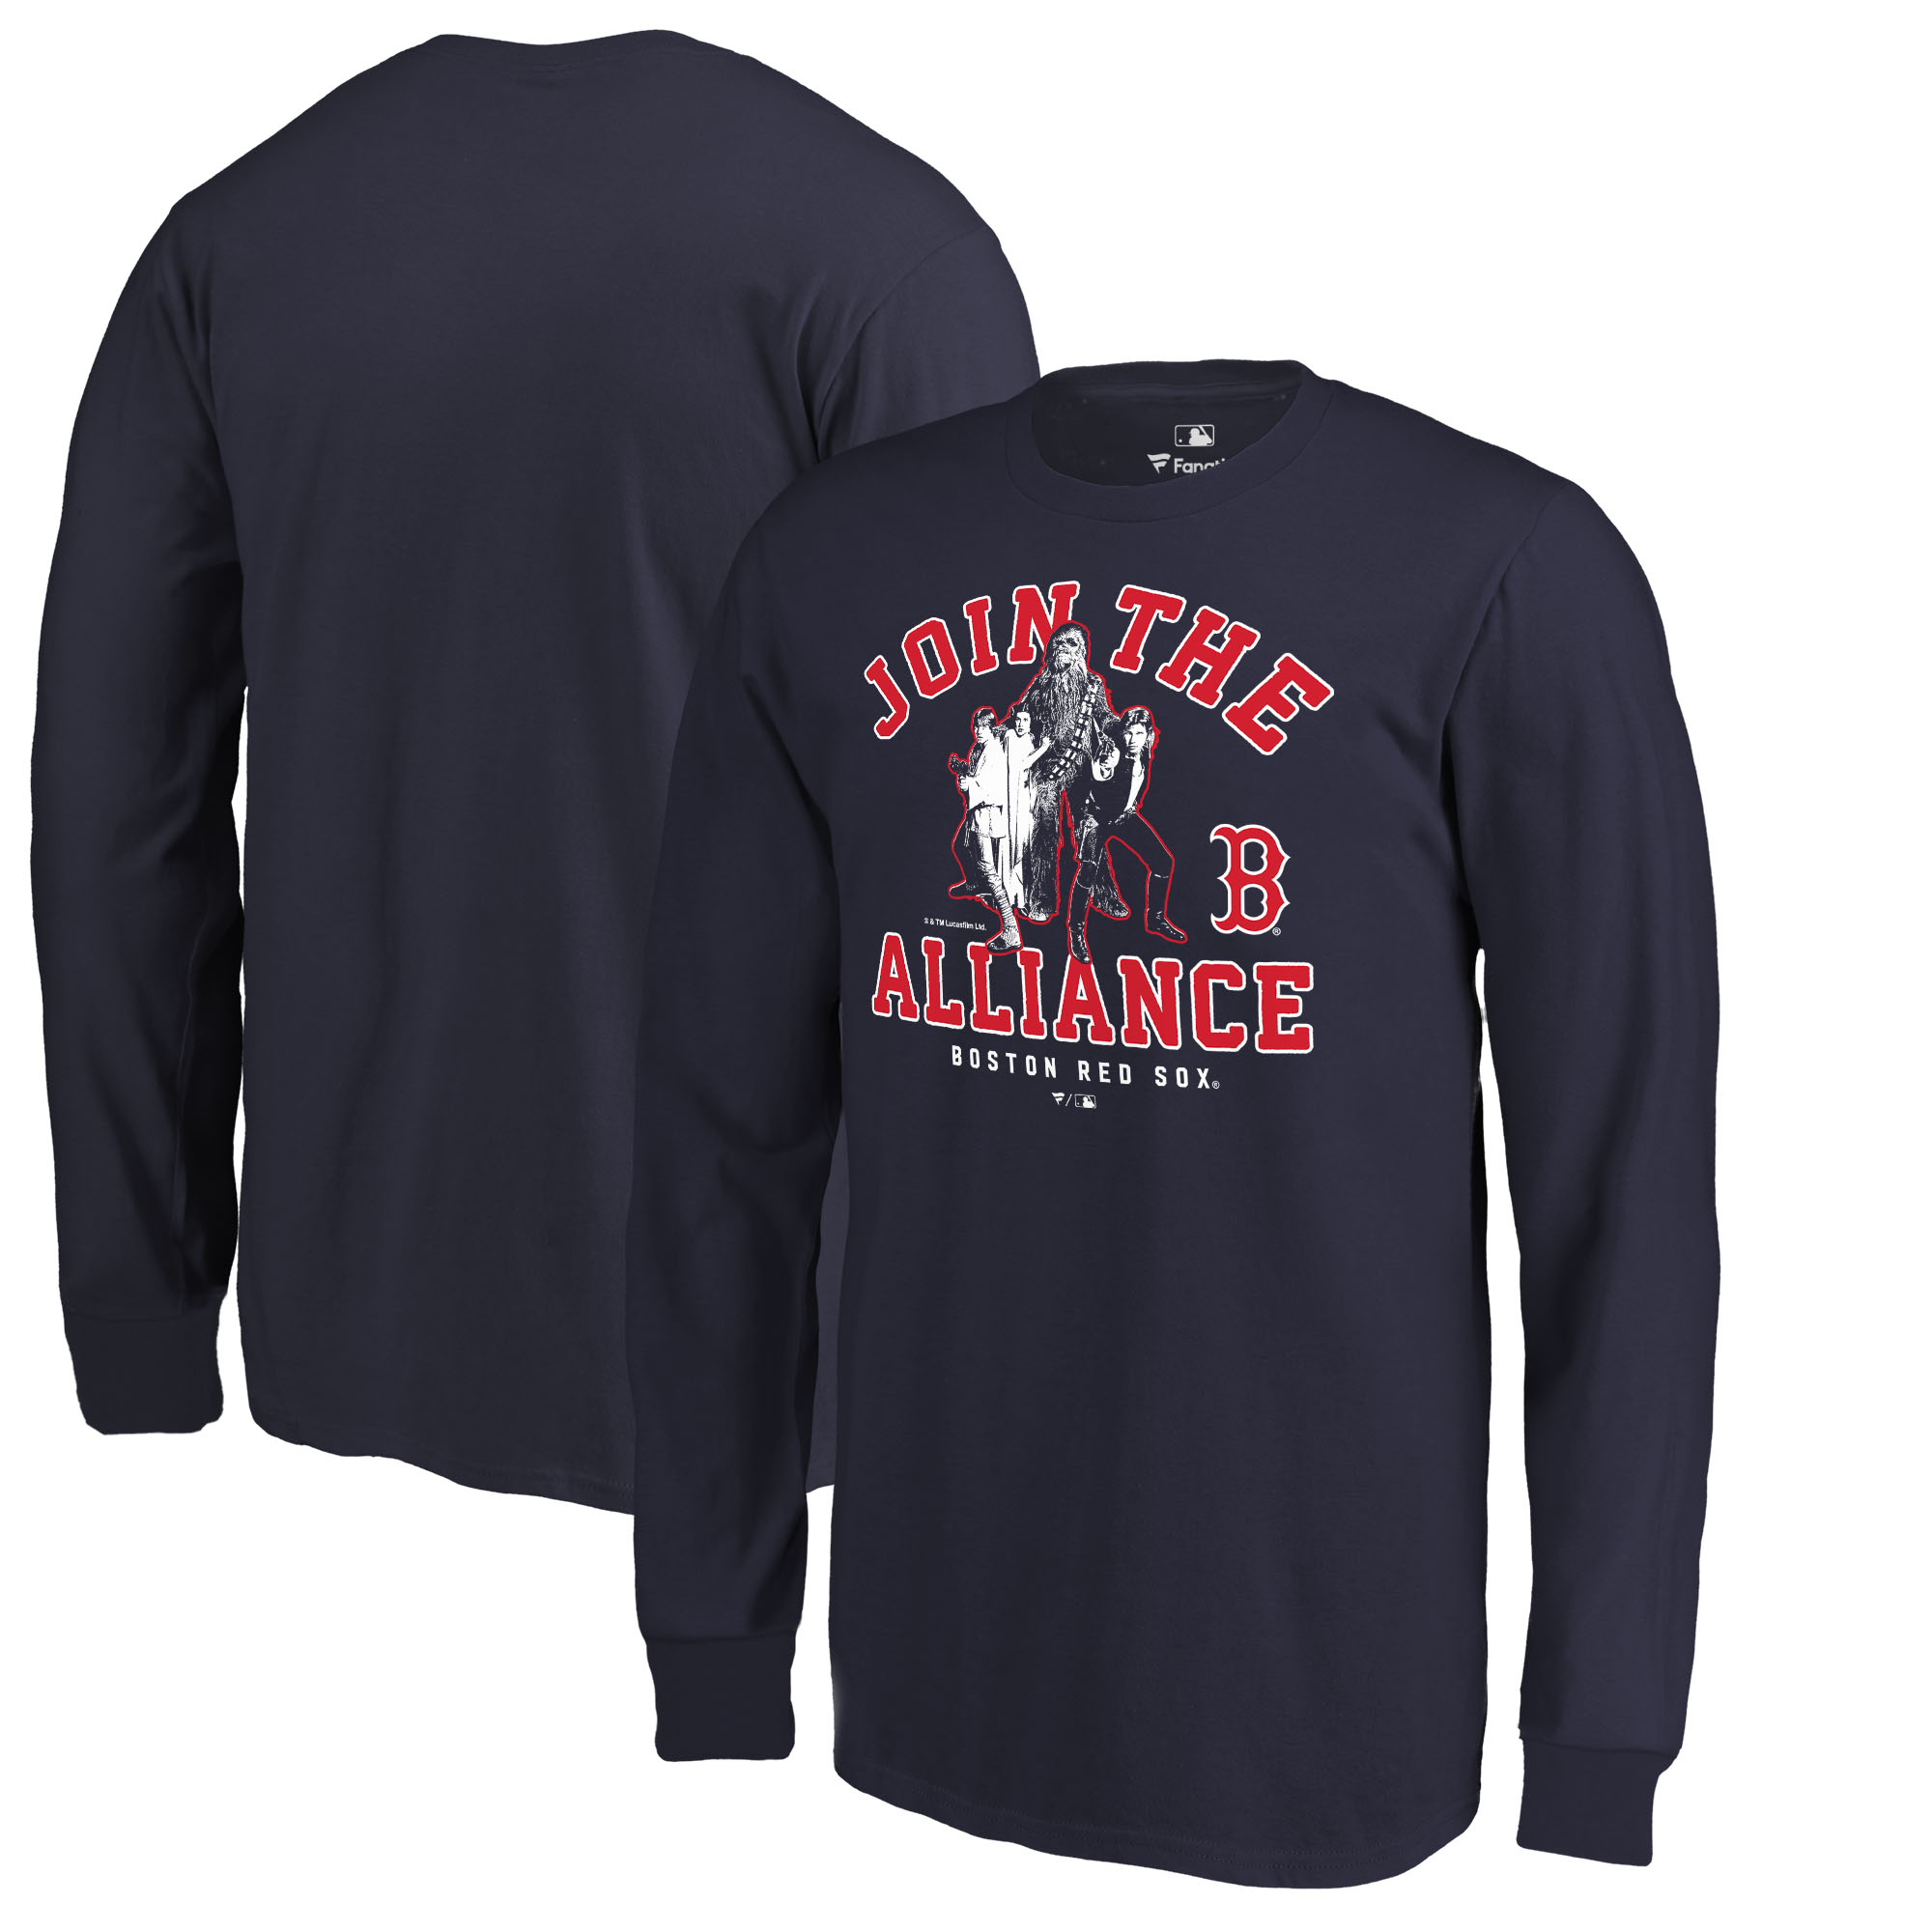 Boston Red Sox Fanatics Branded Youth MLB Star Wars Join The Alliance Long Sleeve T-Shirt - Navy